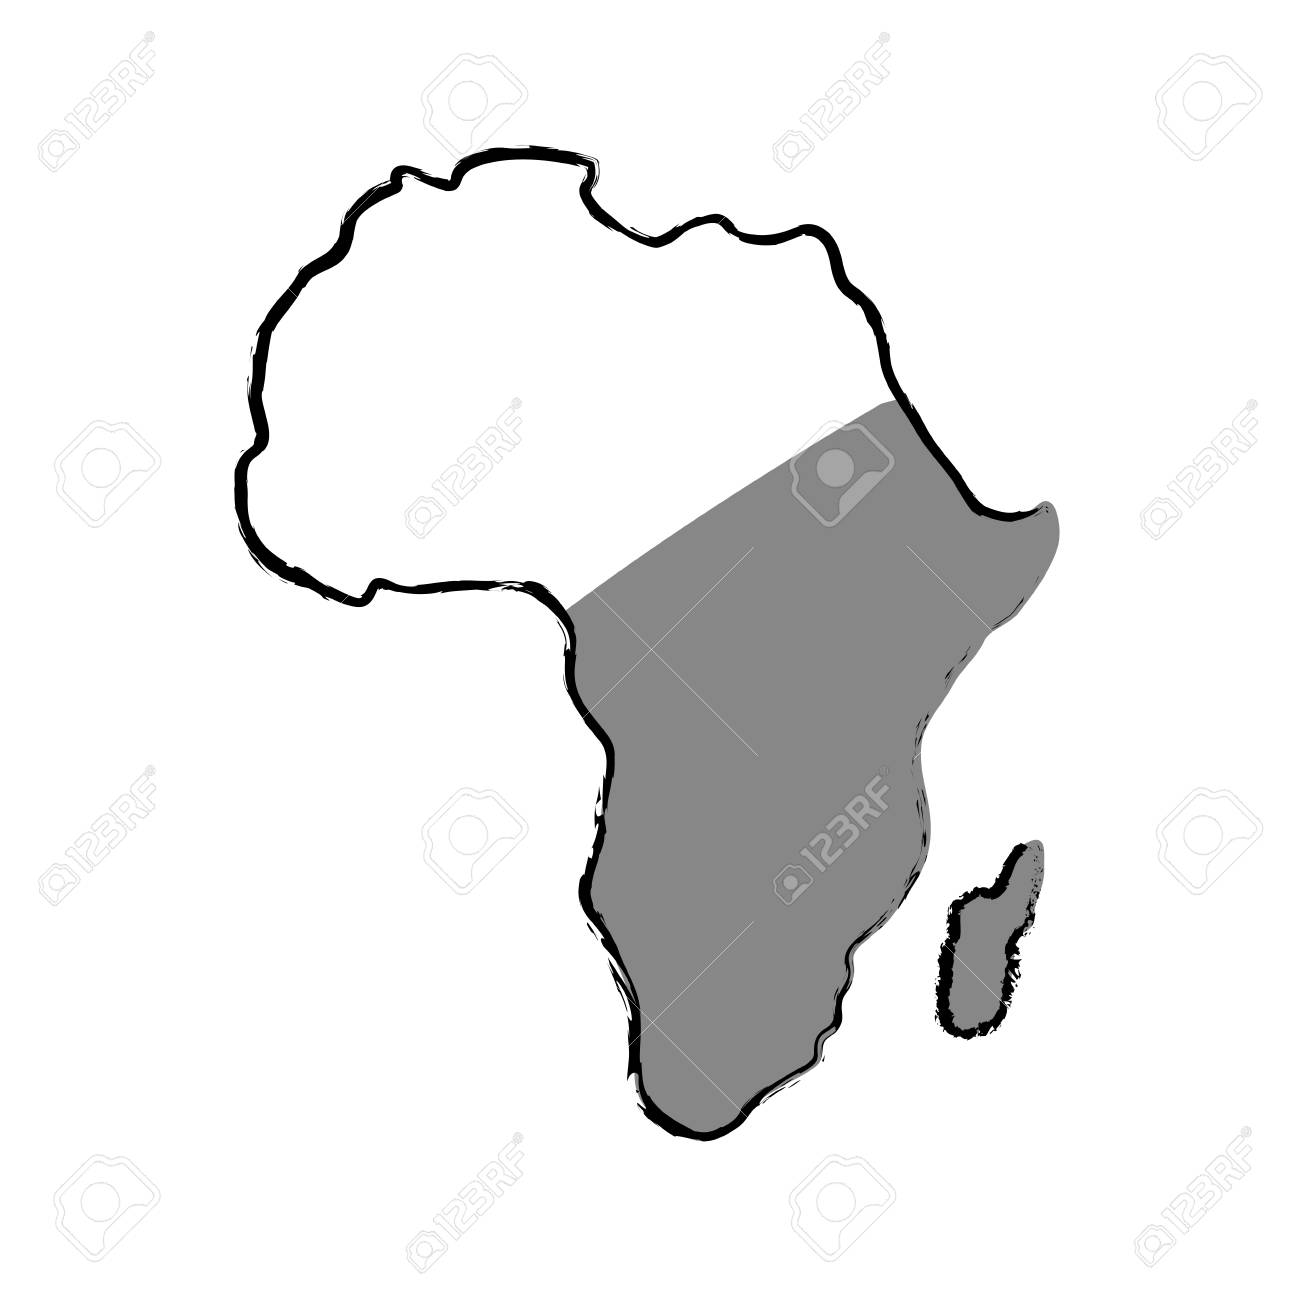 Africa Map Silhouette Vector.Africa Map Silhouette Icon Vector Illustration Graphic Design